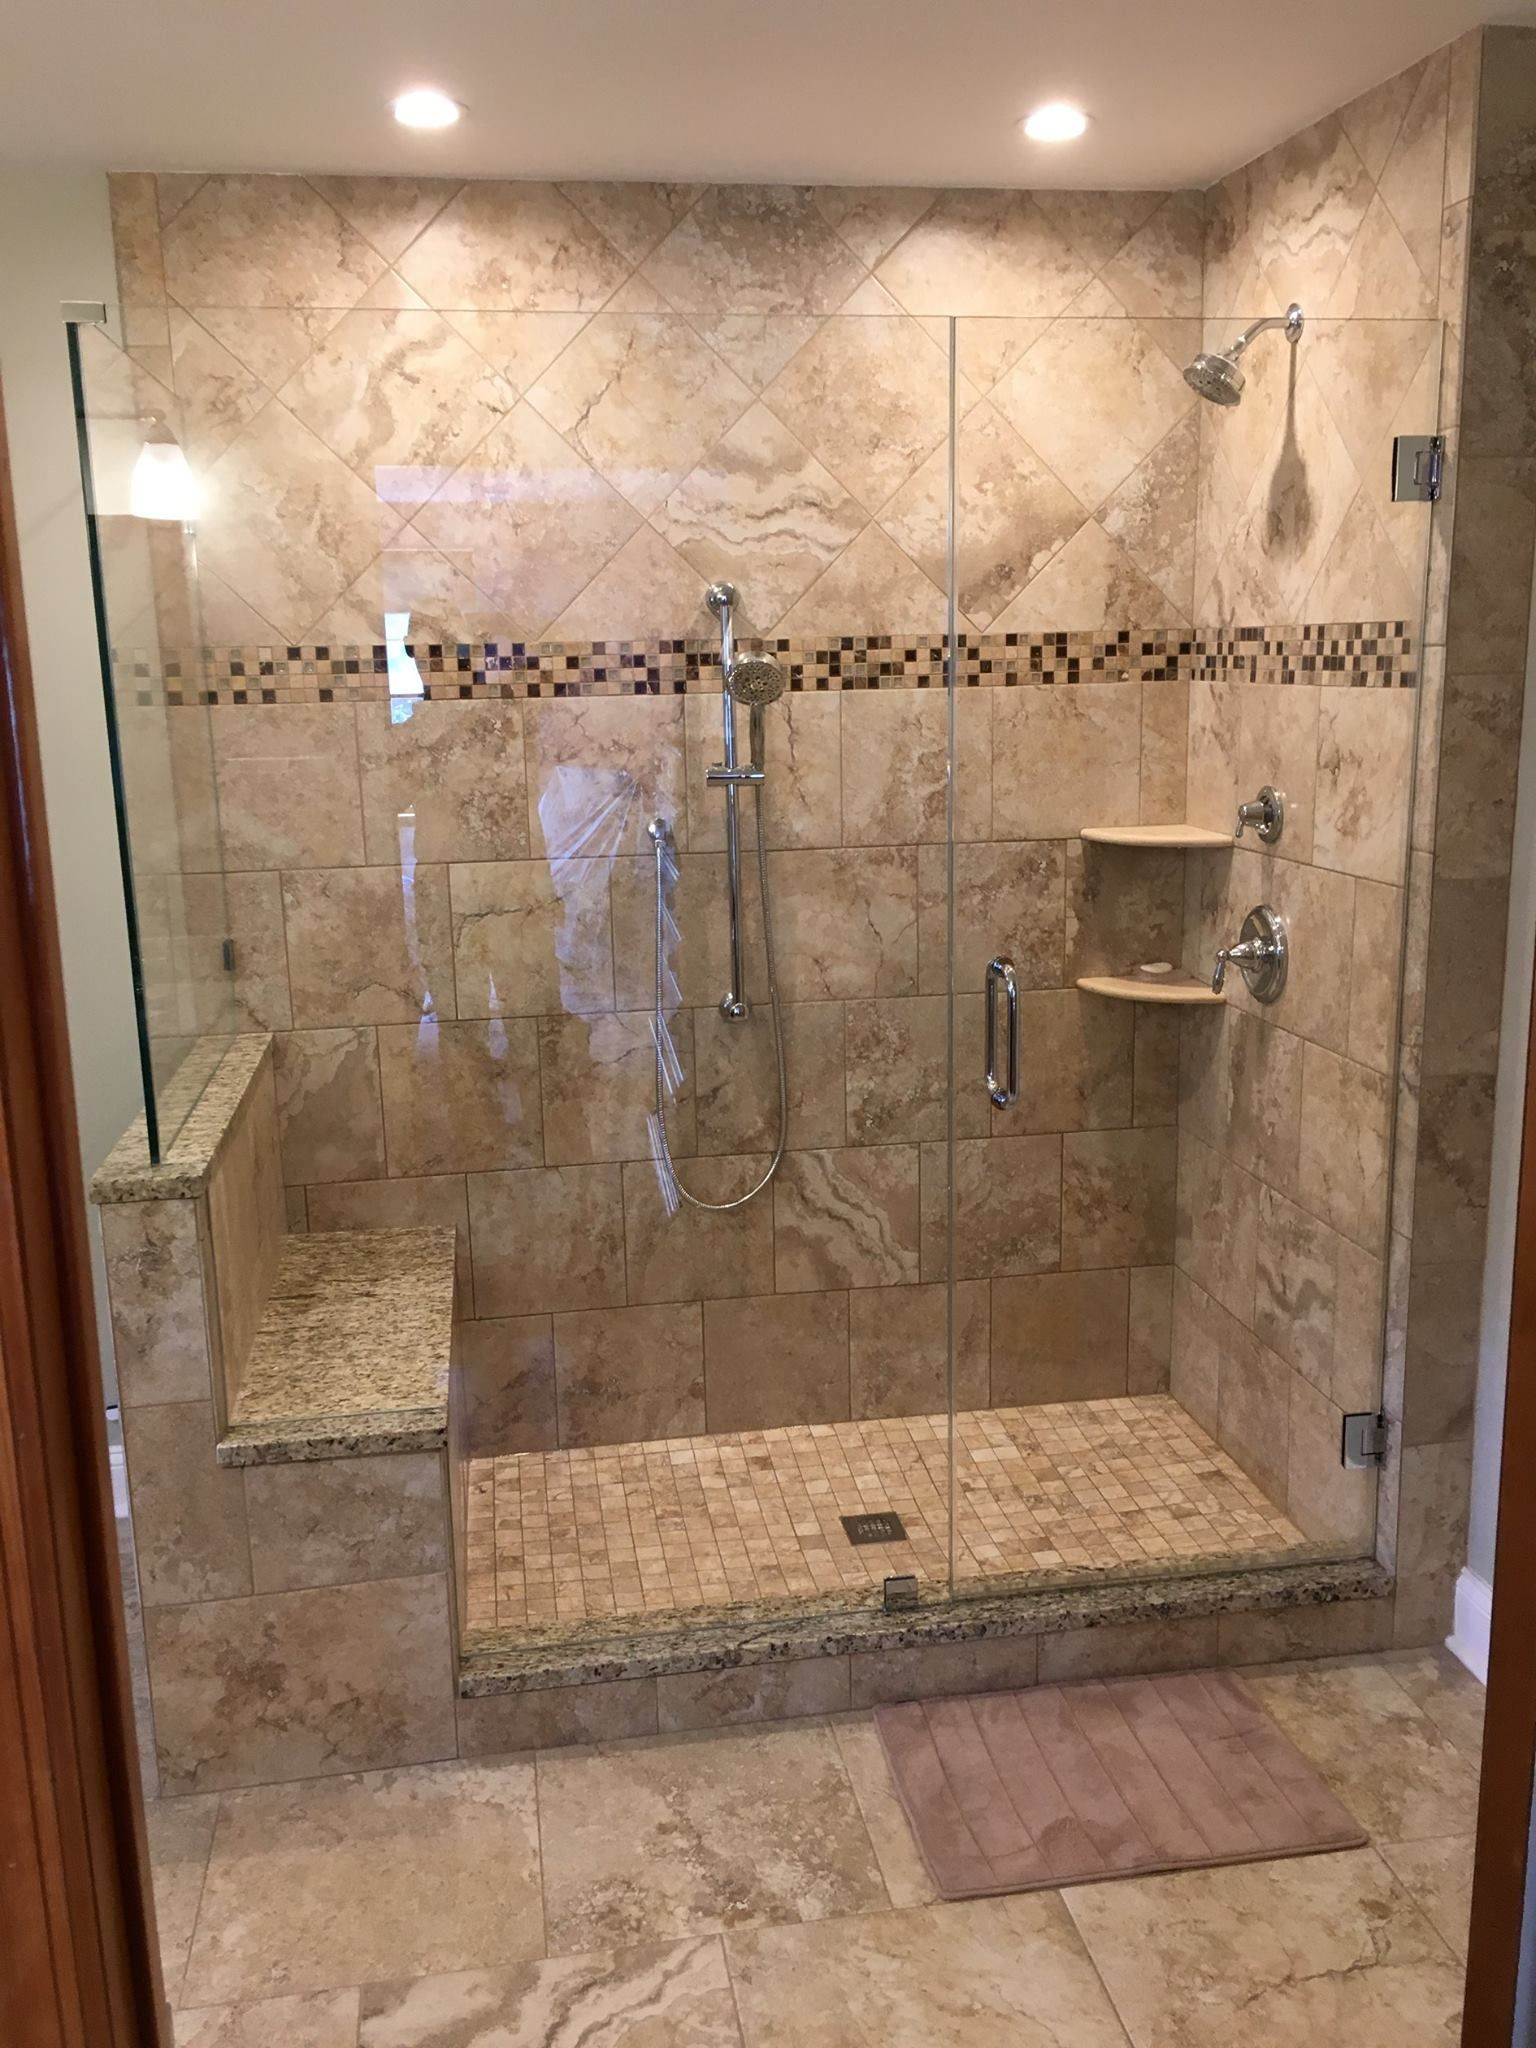 Gallery - Tileable Shower Pans, Shower Bases, Niches, Drains & More ...